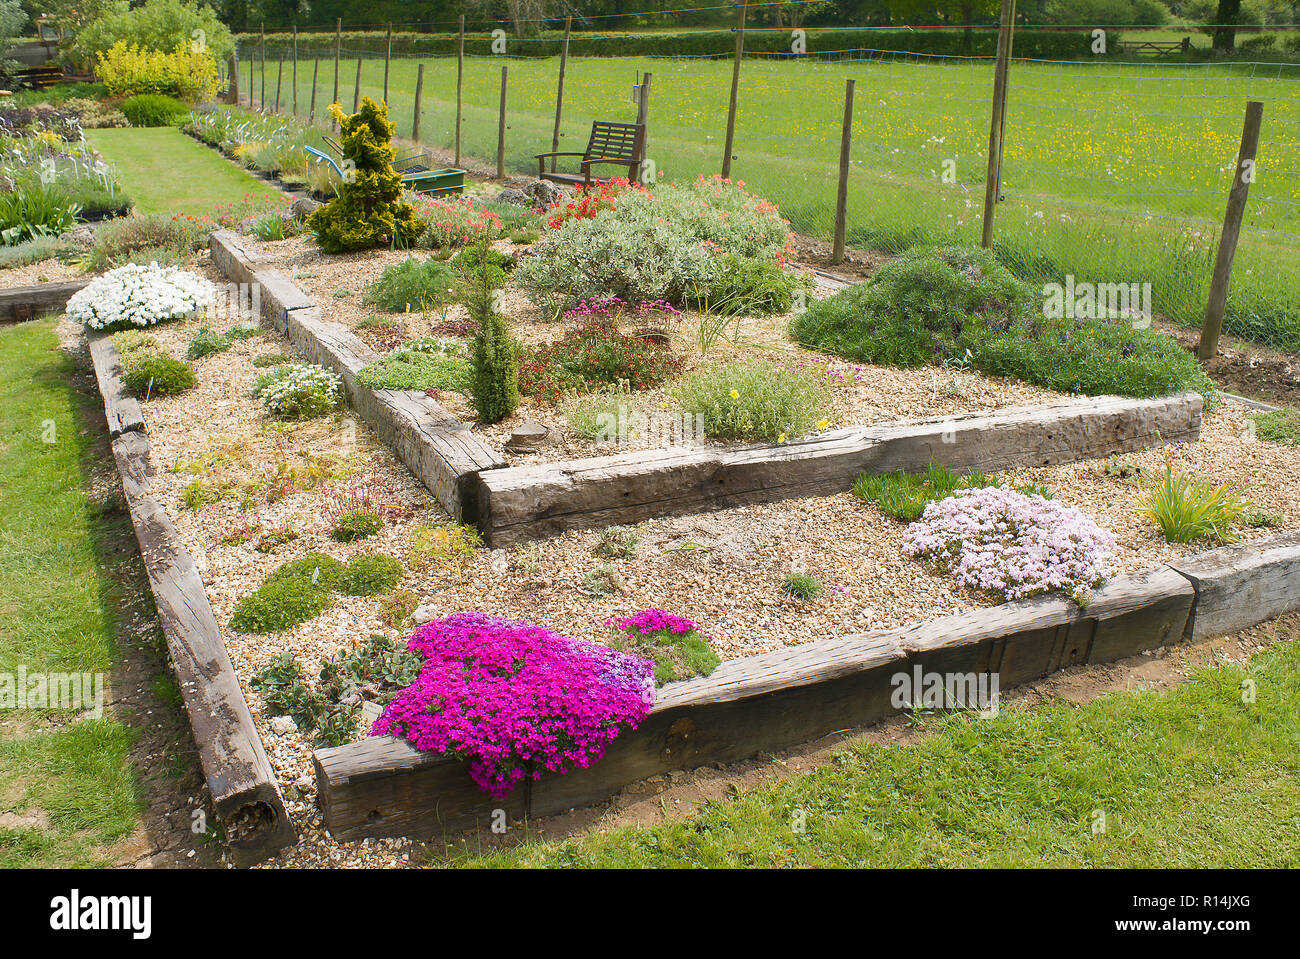 Concentric rectangles form the shape of a shallow raised Alpine bed bounded by old railway sleepers in an English nursery in UK - Stock Image